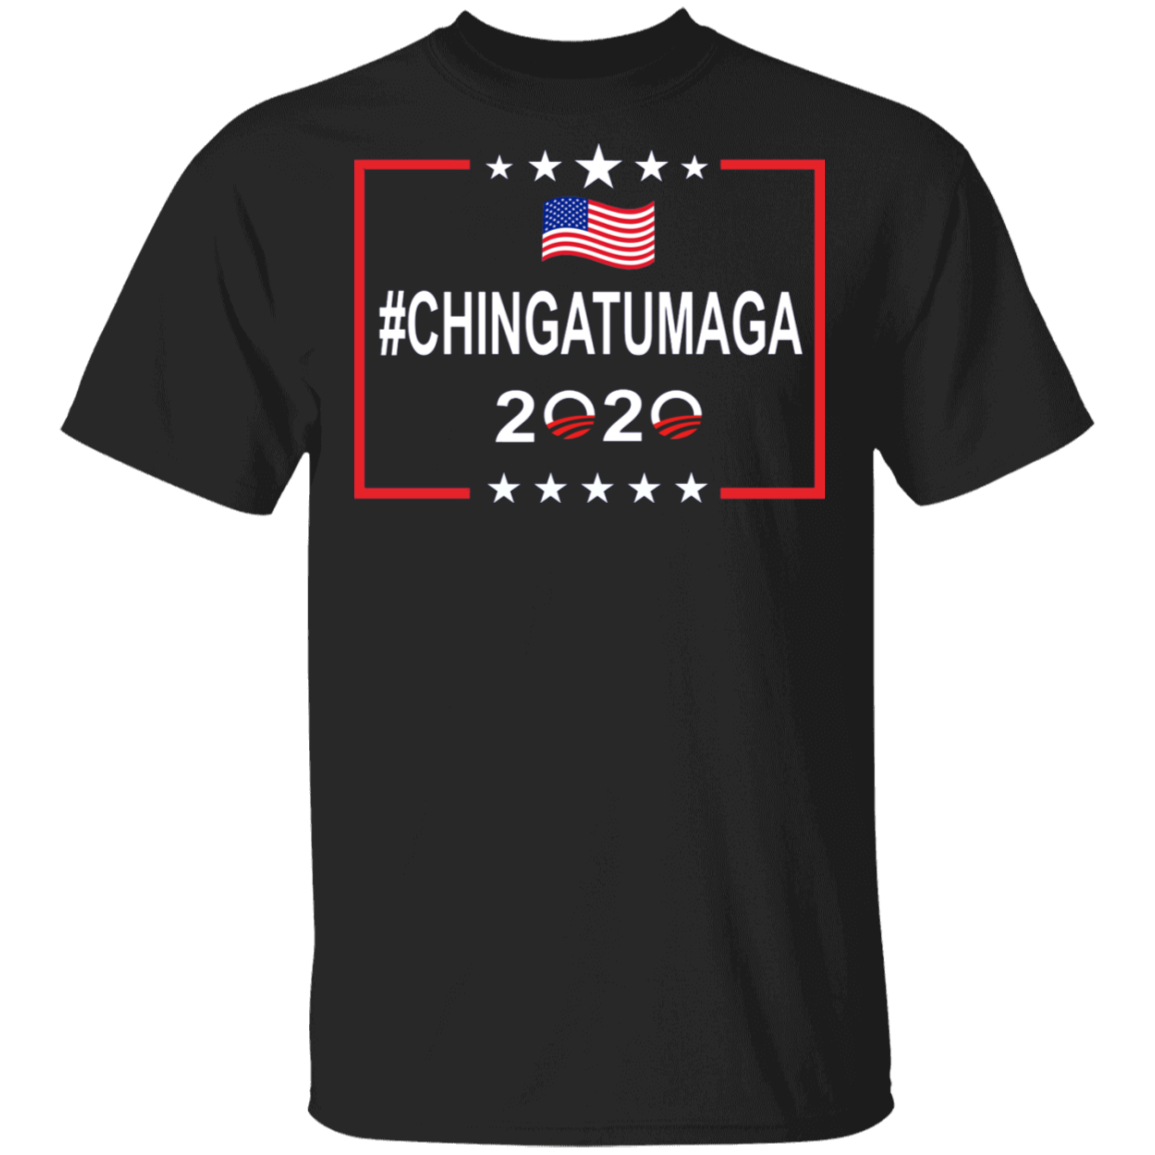 Chingatumaga 2020 Printed T-Shirt Funny Sarcastic T-Shirts For Protesting Trump